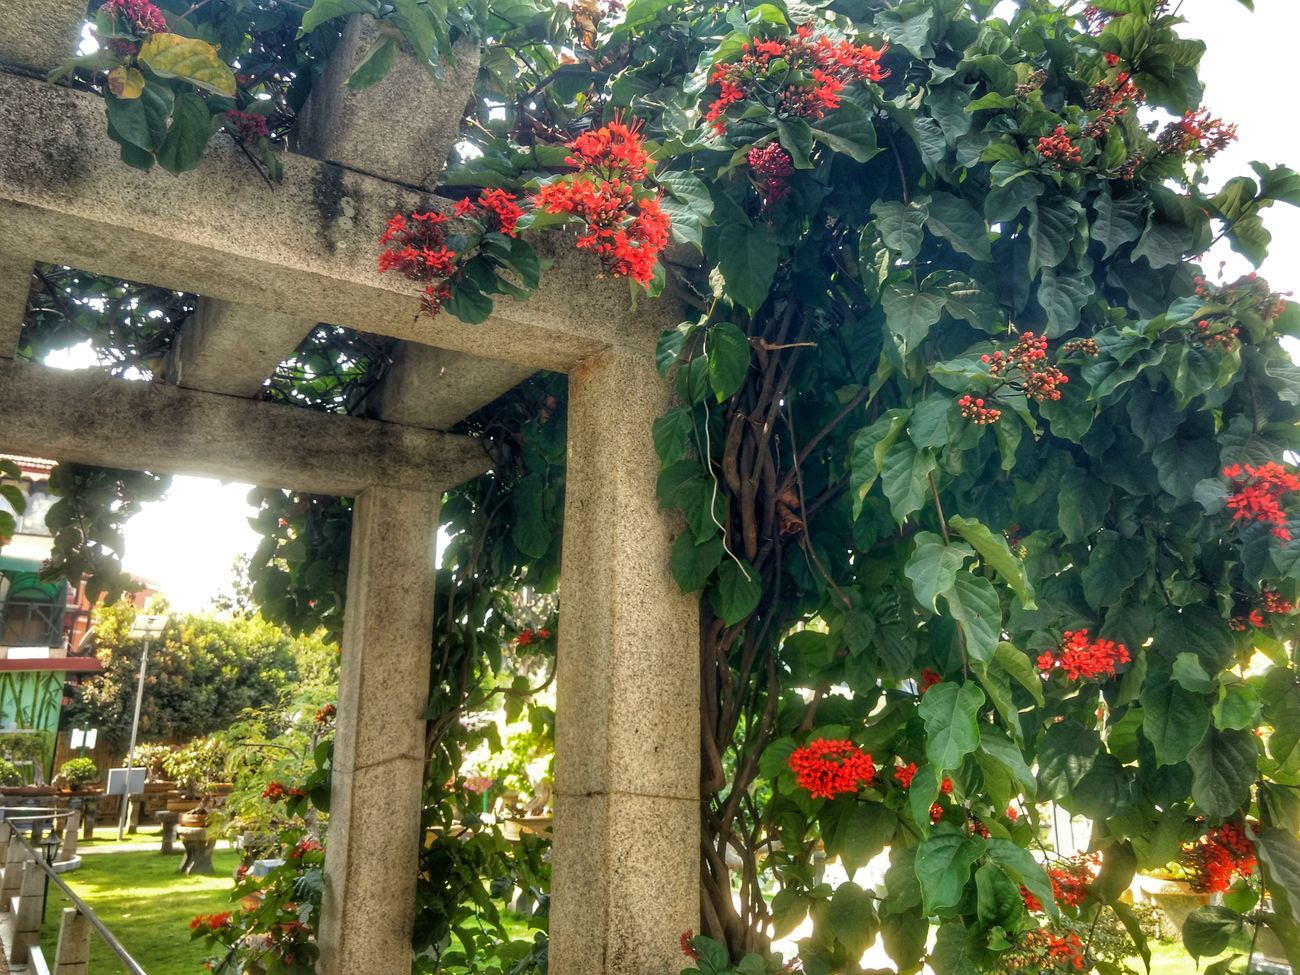 Long time. No post. Tree No People Growth Branch Outdoors Nature Landscape Green Beauty In Nature Flower Garden Blooming Red Pergola Gardens Creepers